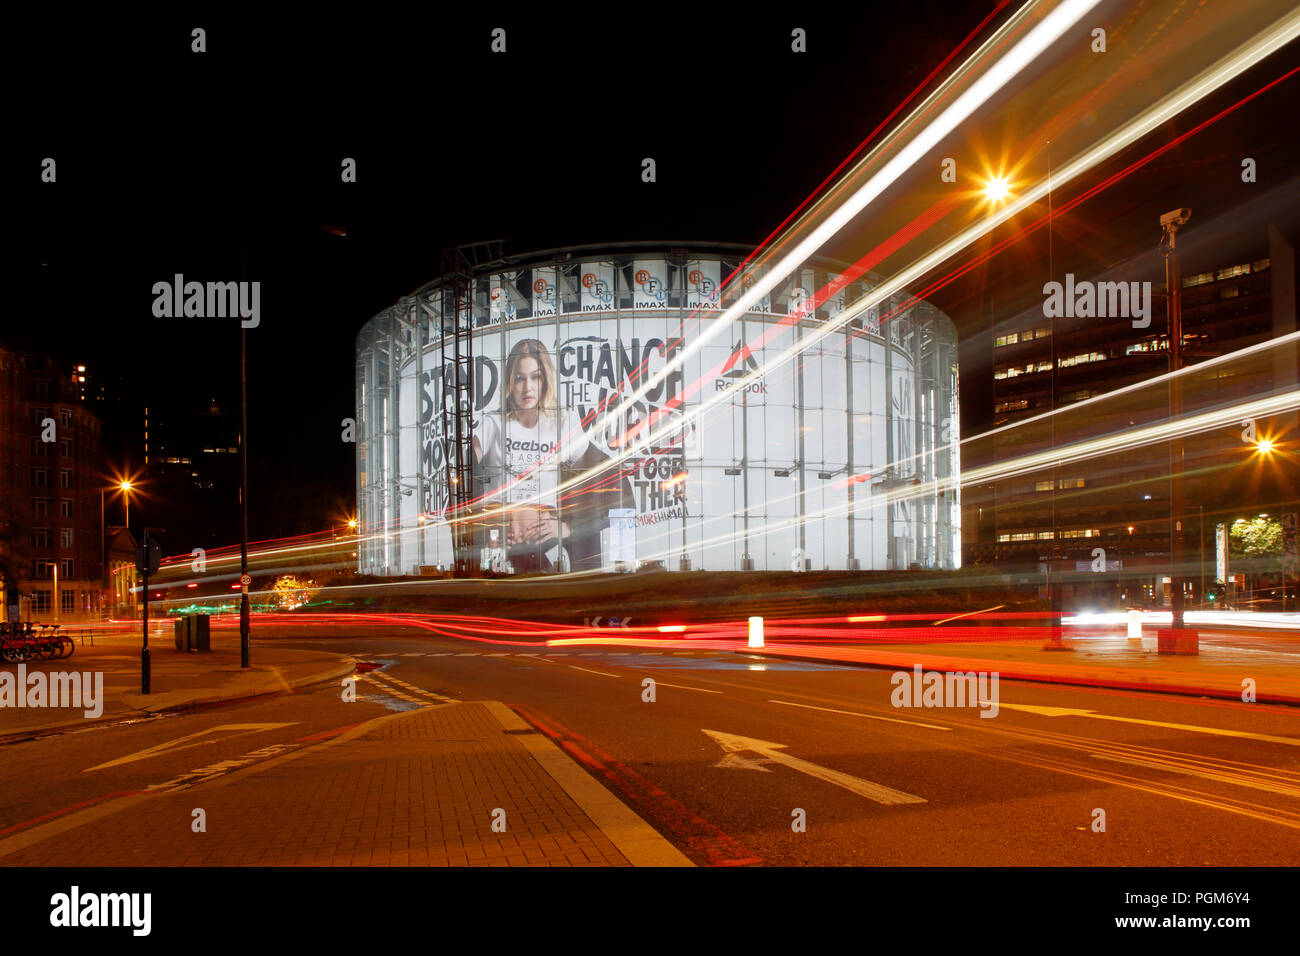 London BFI IMAX cinema at Waterloo, photographed at night, long exposure to include light trails left by passing traffic. - Stock Image